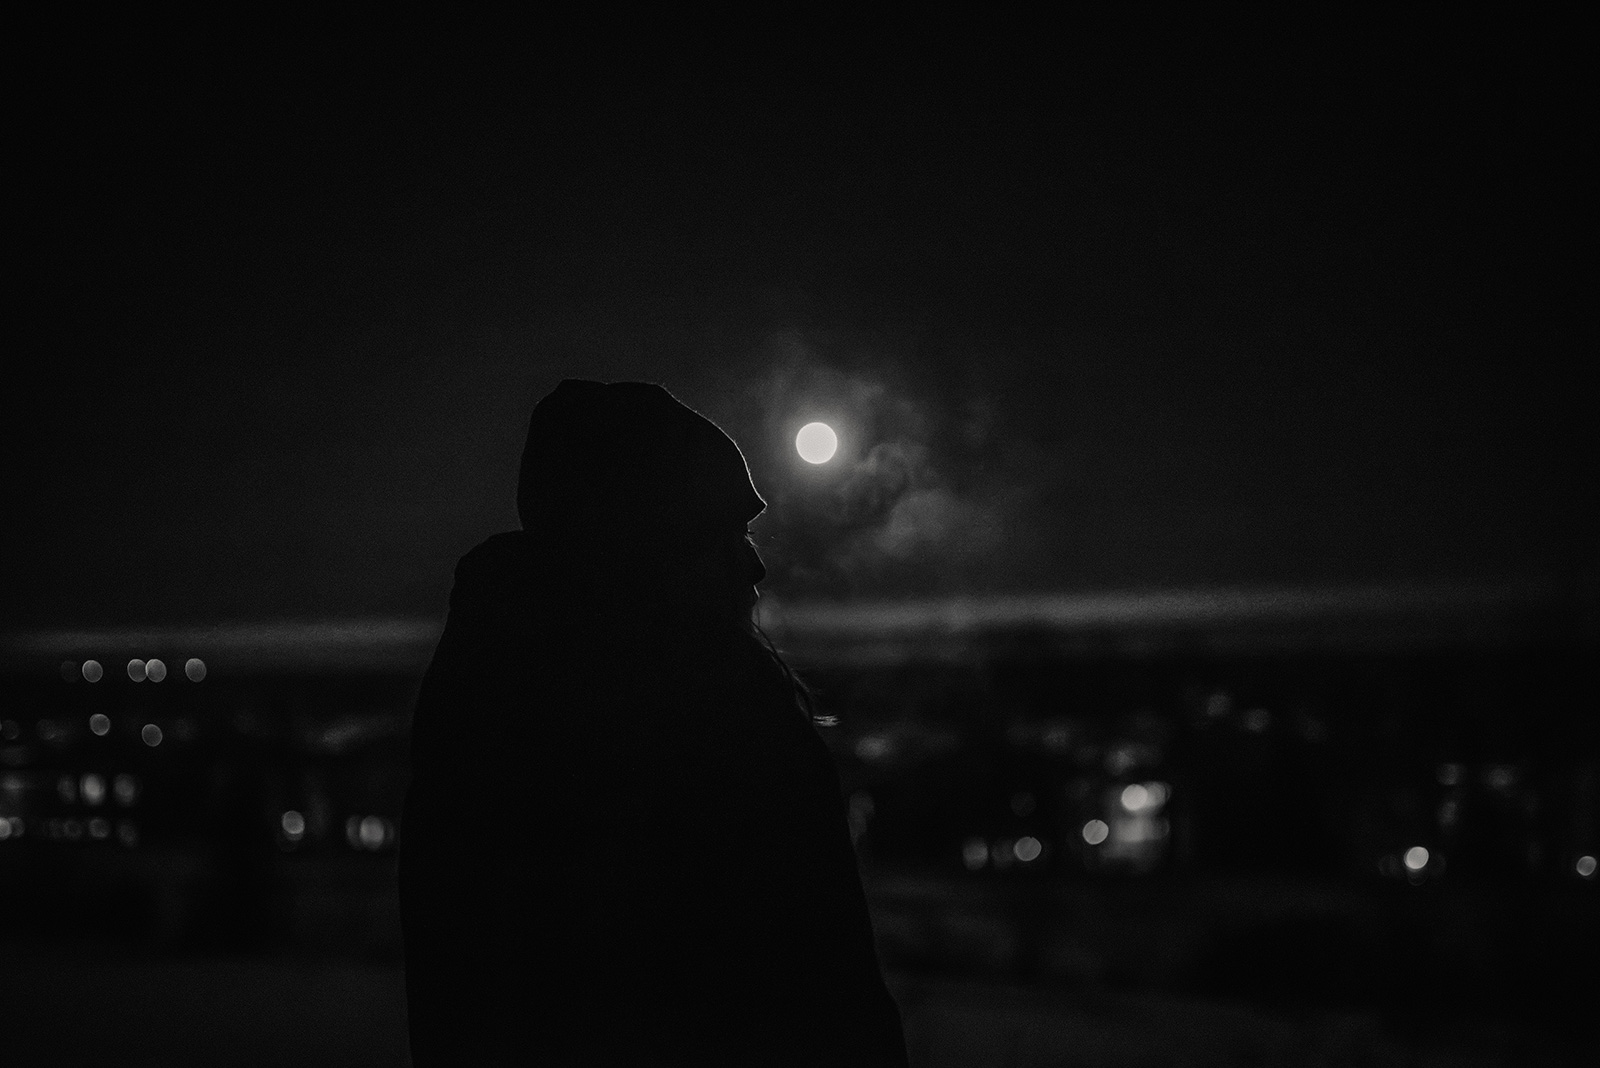 girl-profile-moon-black-and-white-silhouetteMelissa-Richard14